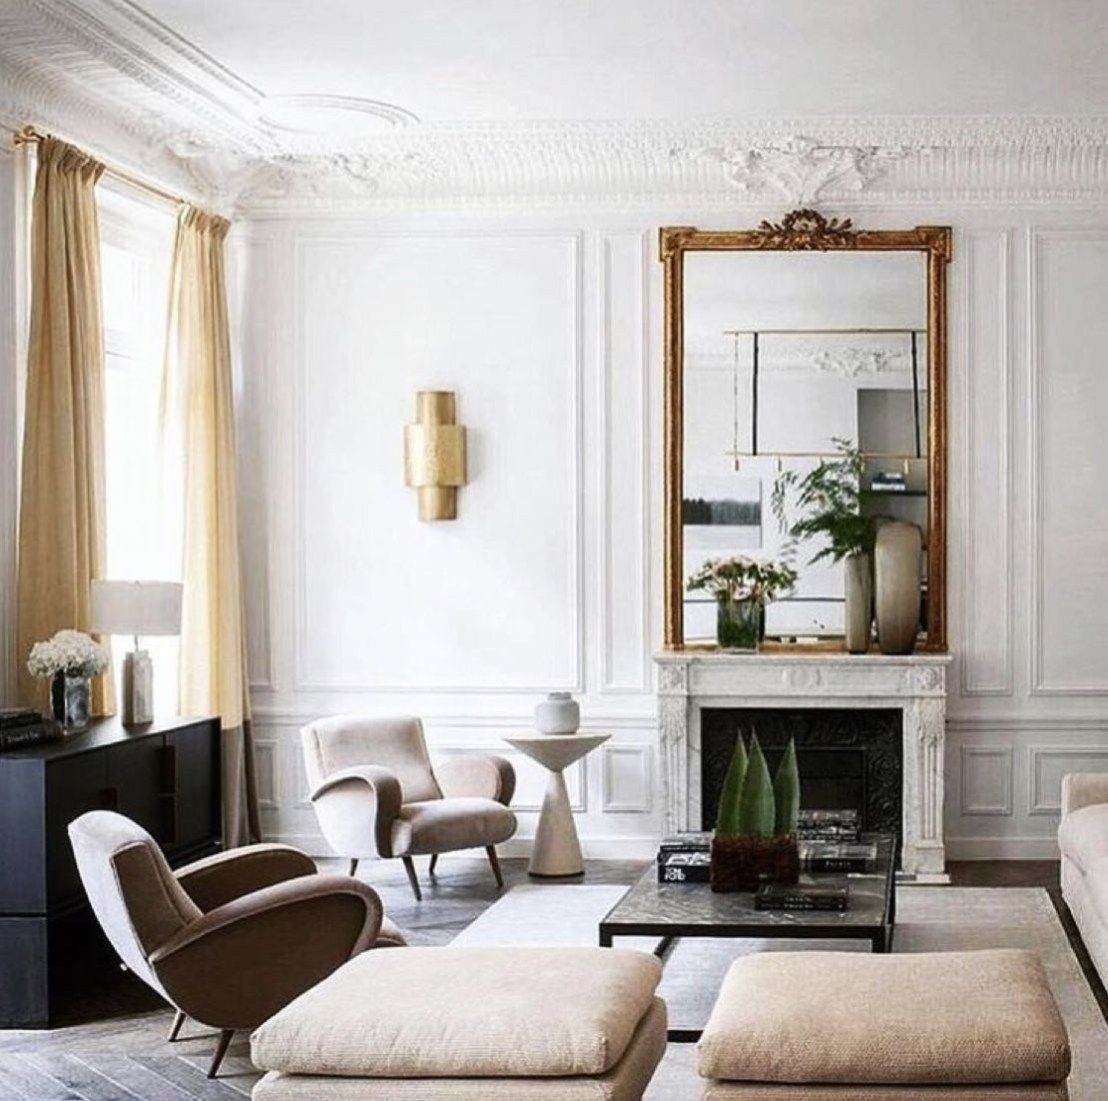 Vintage Classic Minimalist Living Room Decor Ideas With